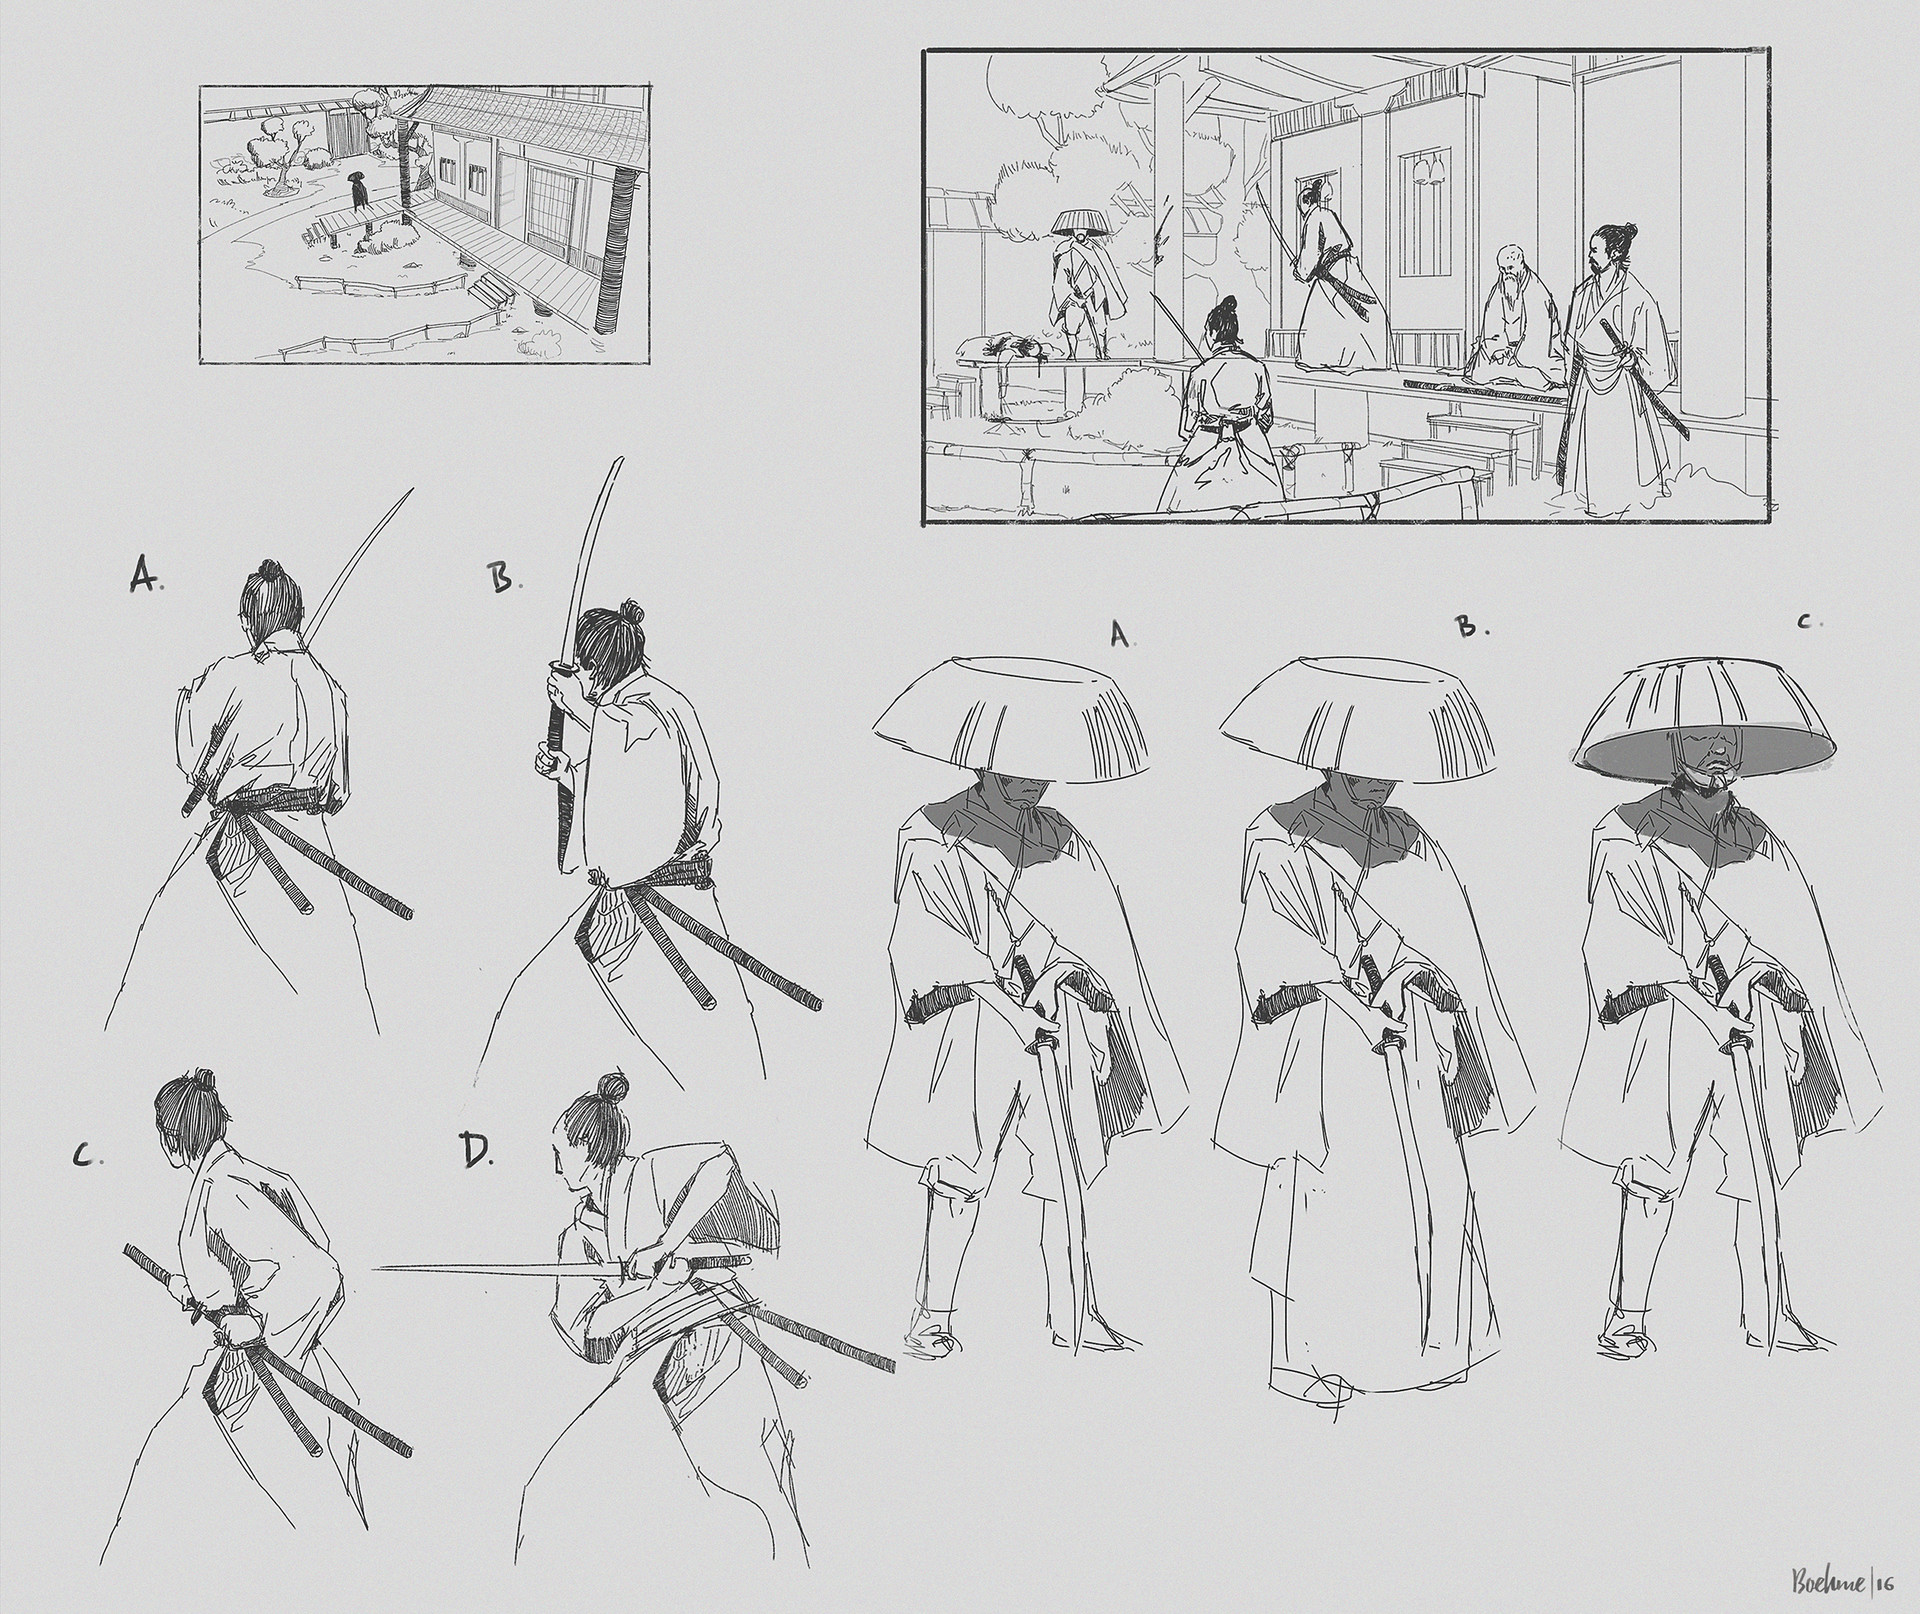 Composition and pose sketches